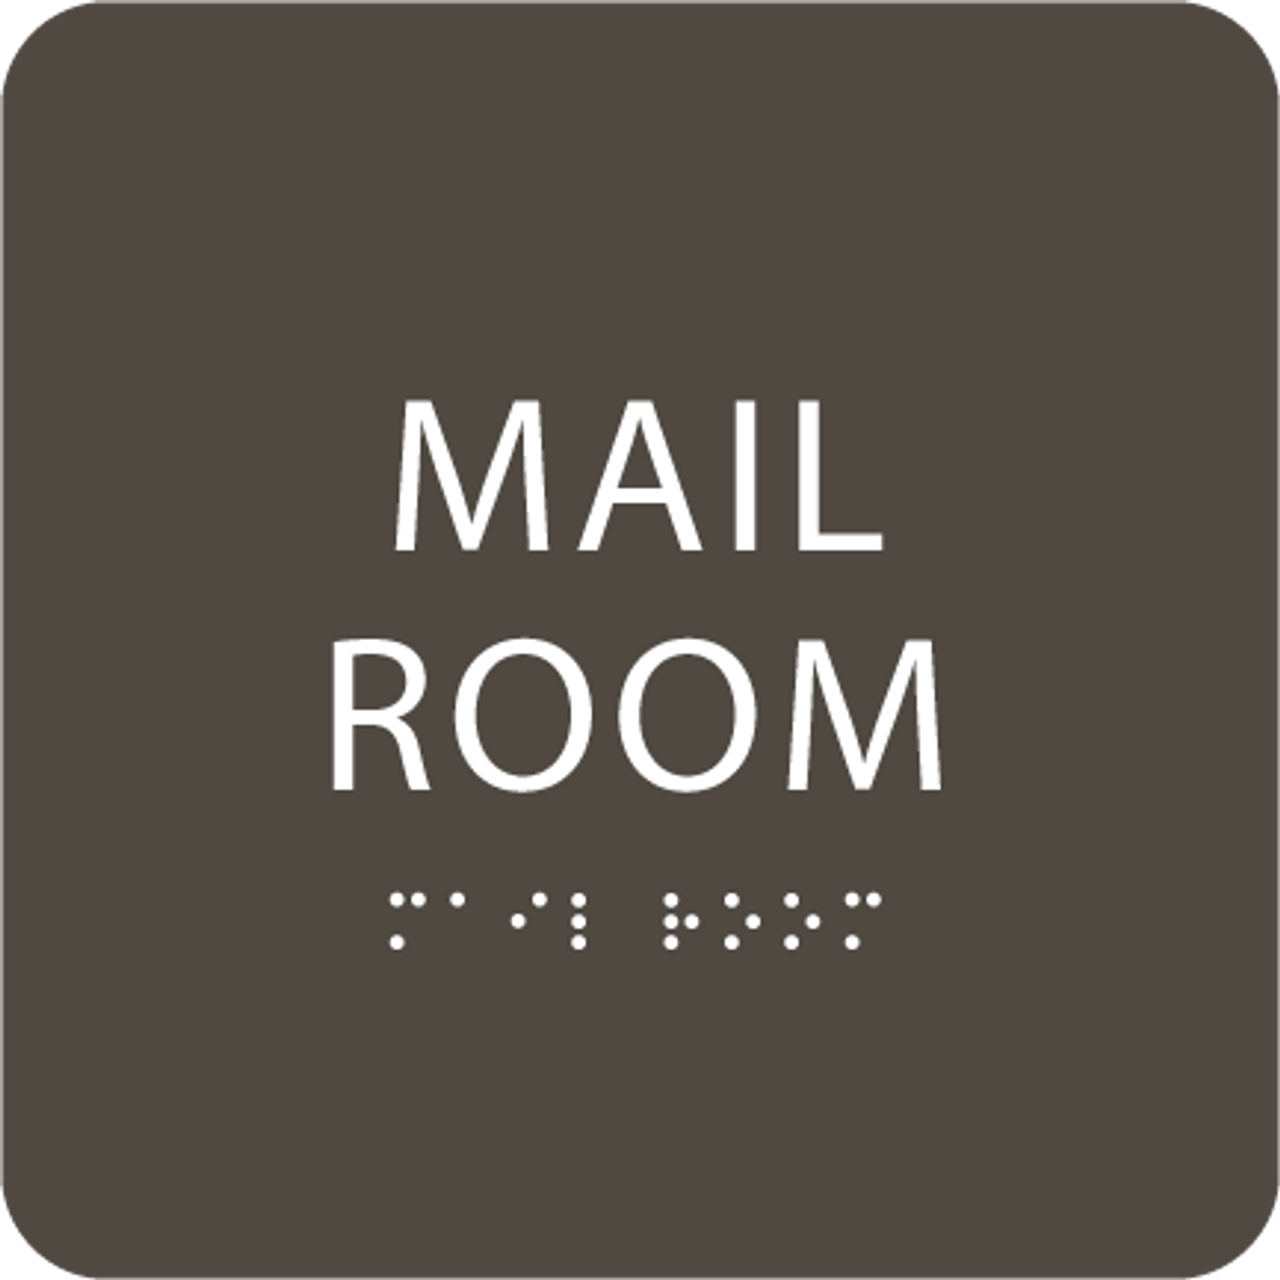 Olive Mail Room ADA Sign